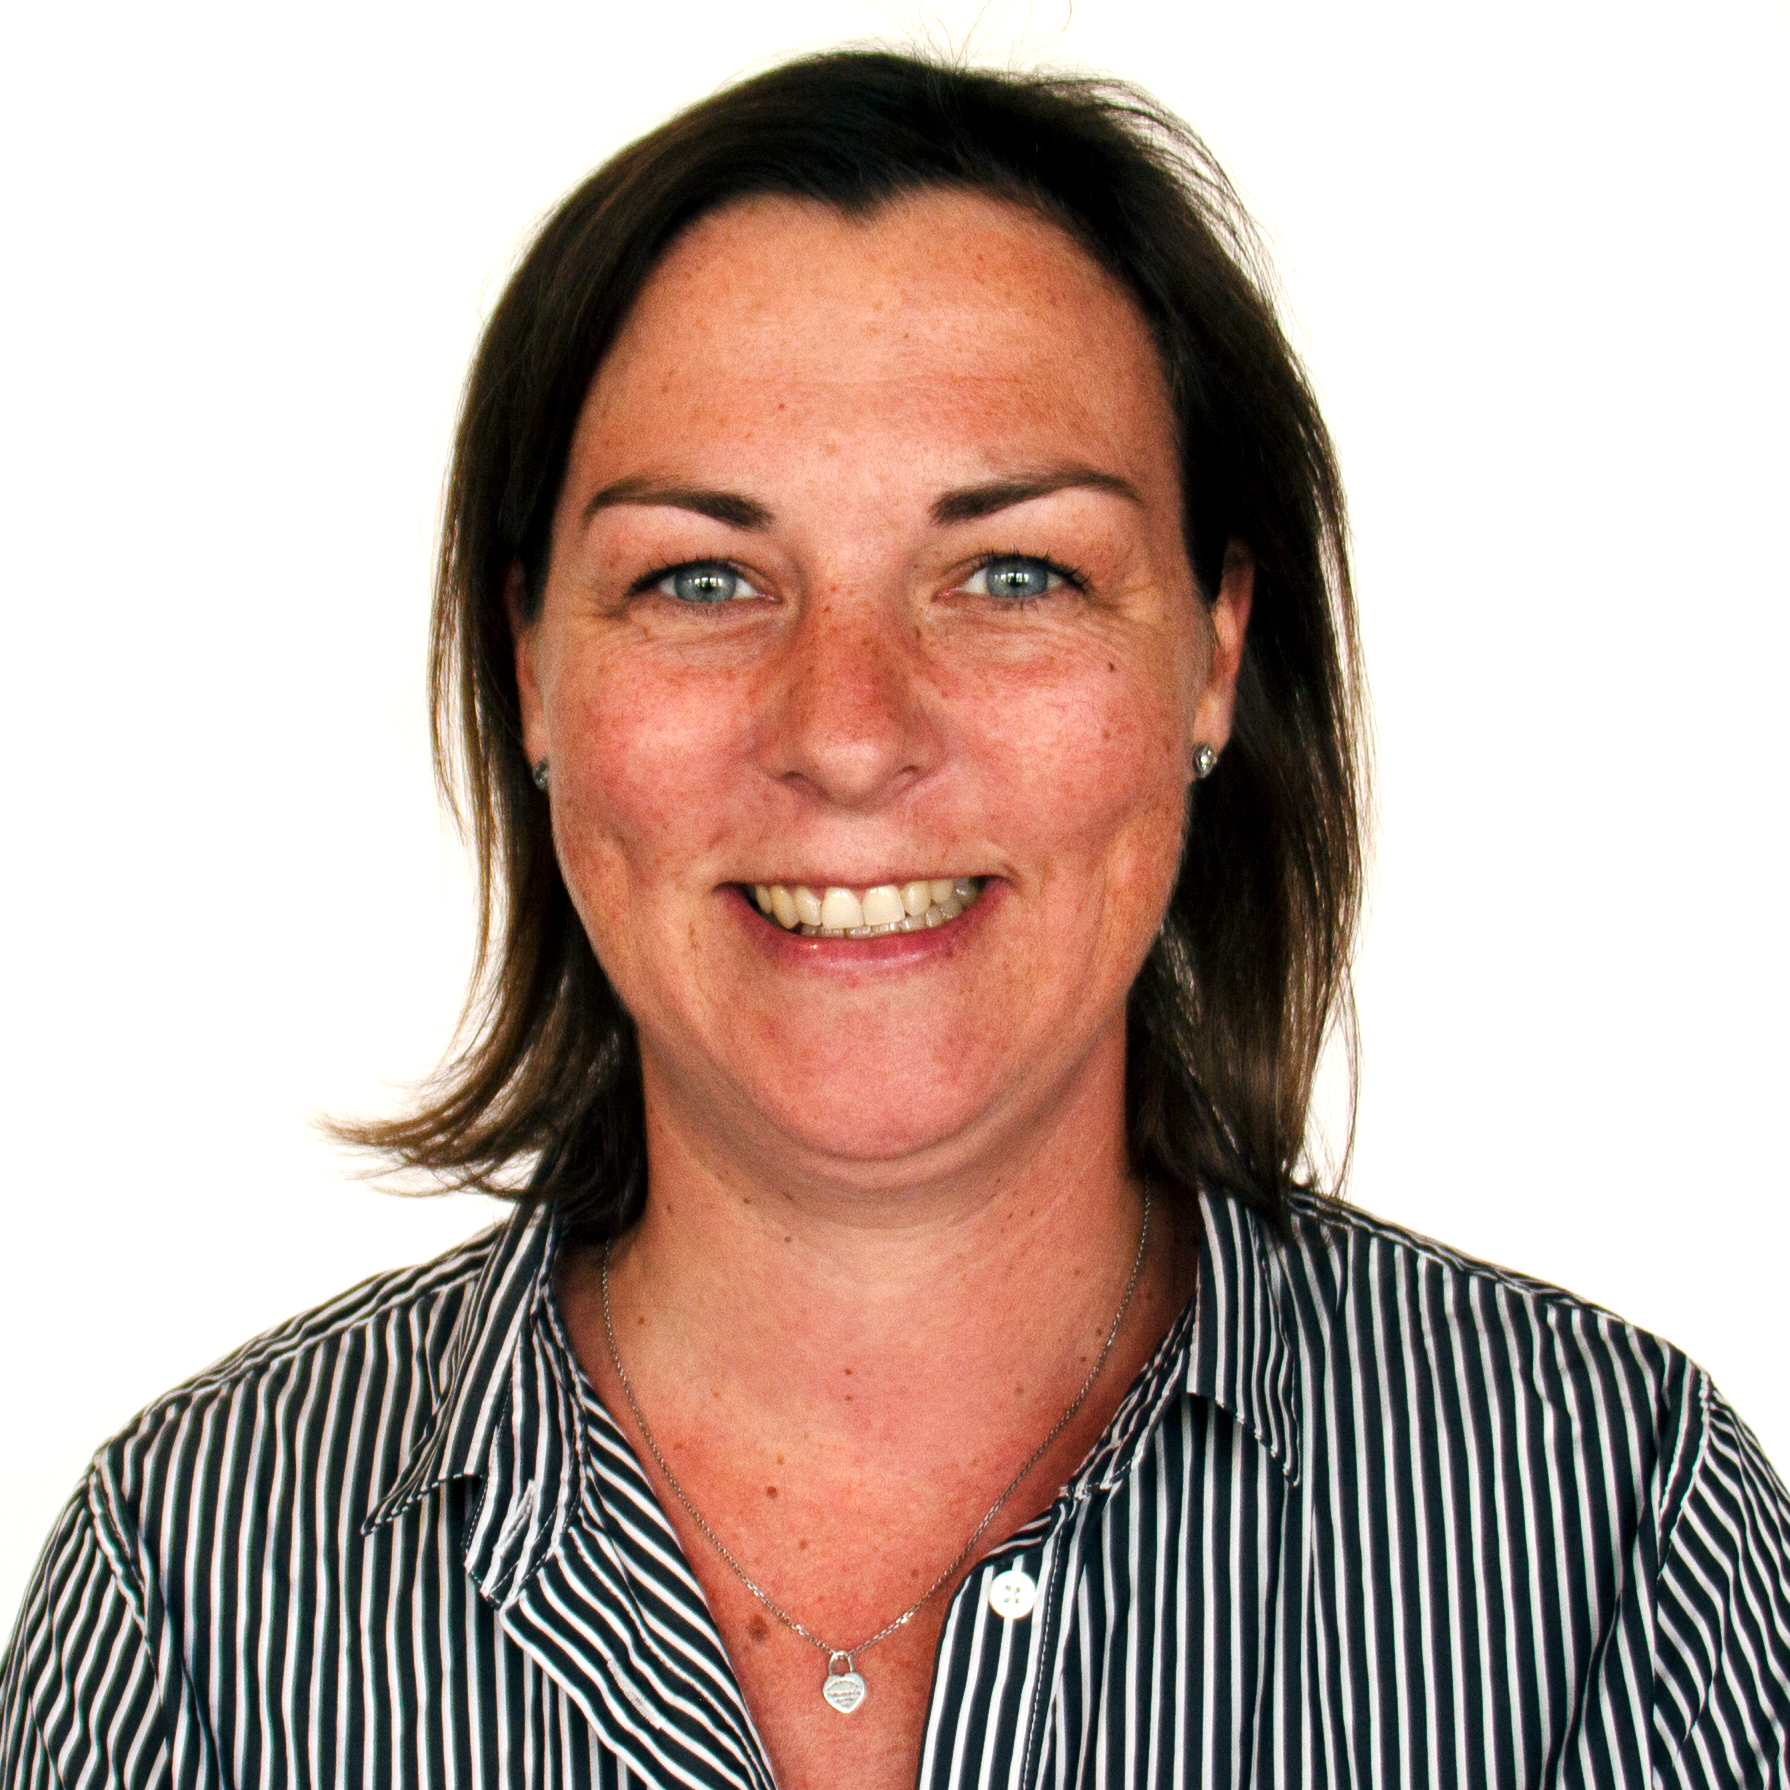 marly van der made - For the last decade Marly was active as a Operational & HR Manager. Since August 2018 Marly joined the Algam Benelux team as personal assistant of CEO Alain Bokken and she is responsible for the HR department and Office Management.